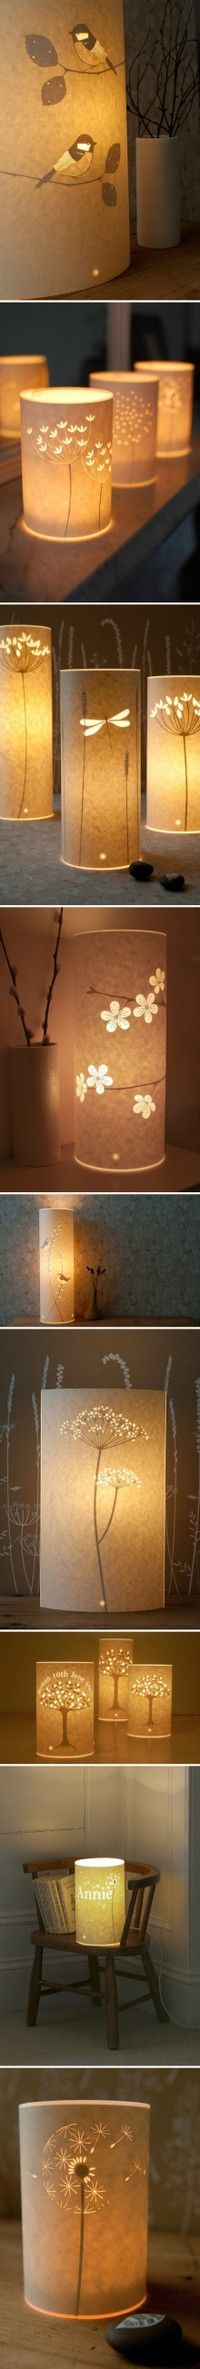 lights night lamp